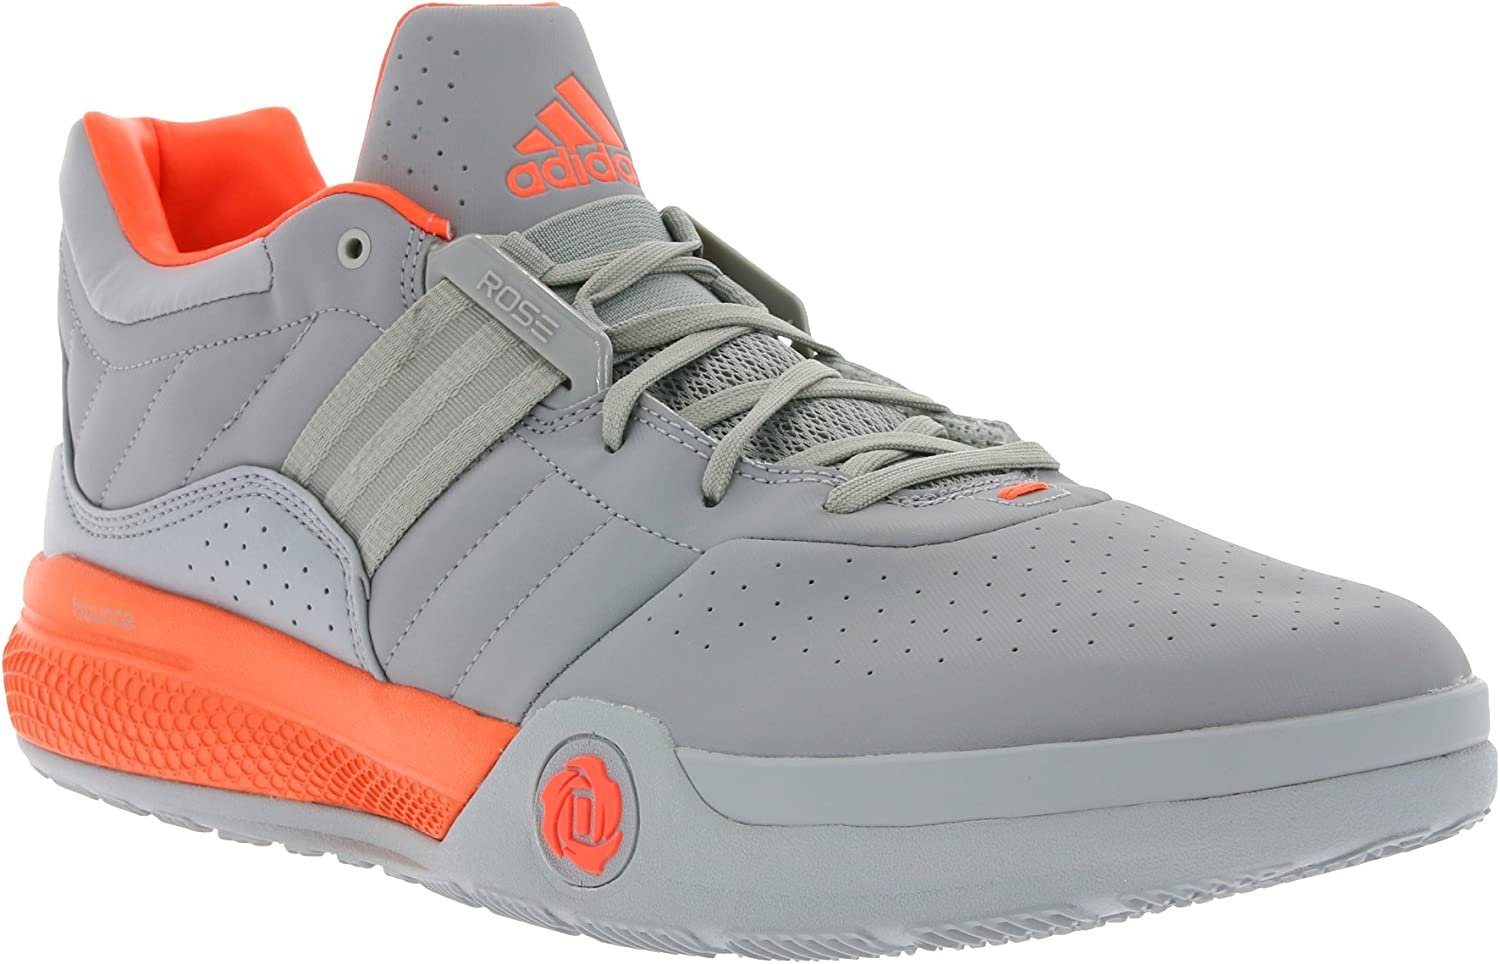 Adidas Chaussure Basketball D pink Englewood IV grey S85555